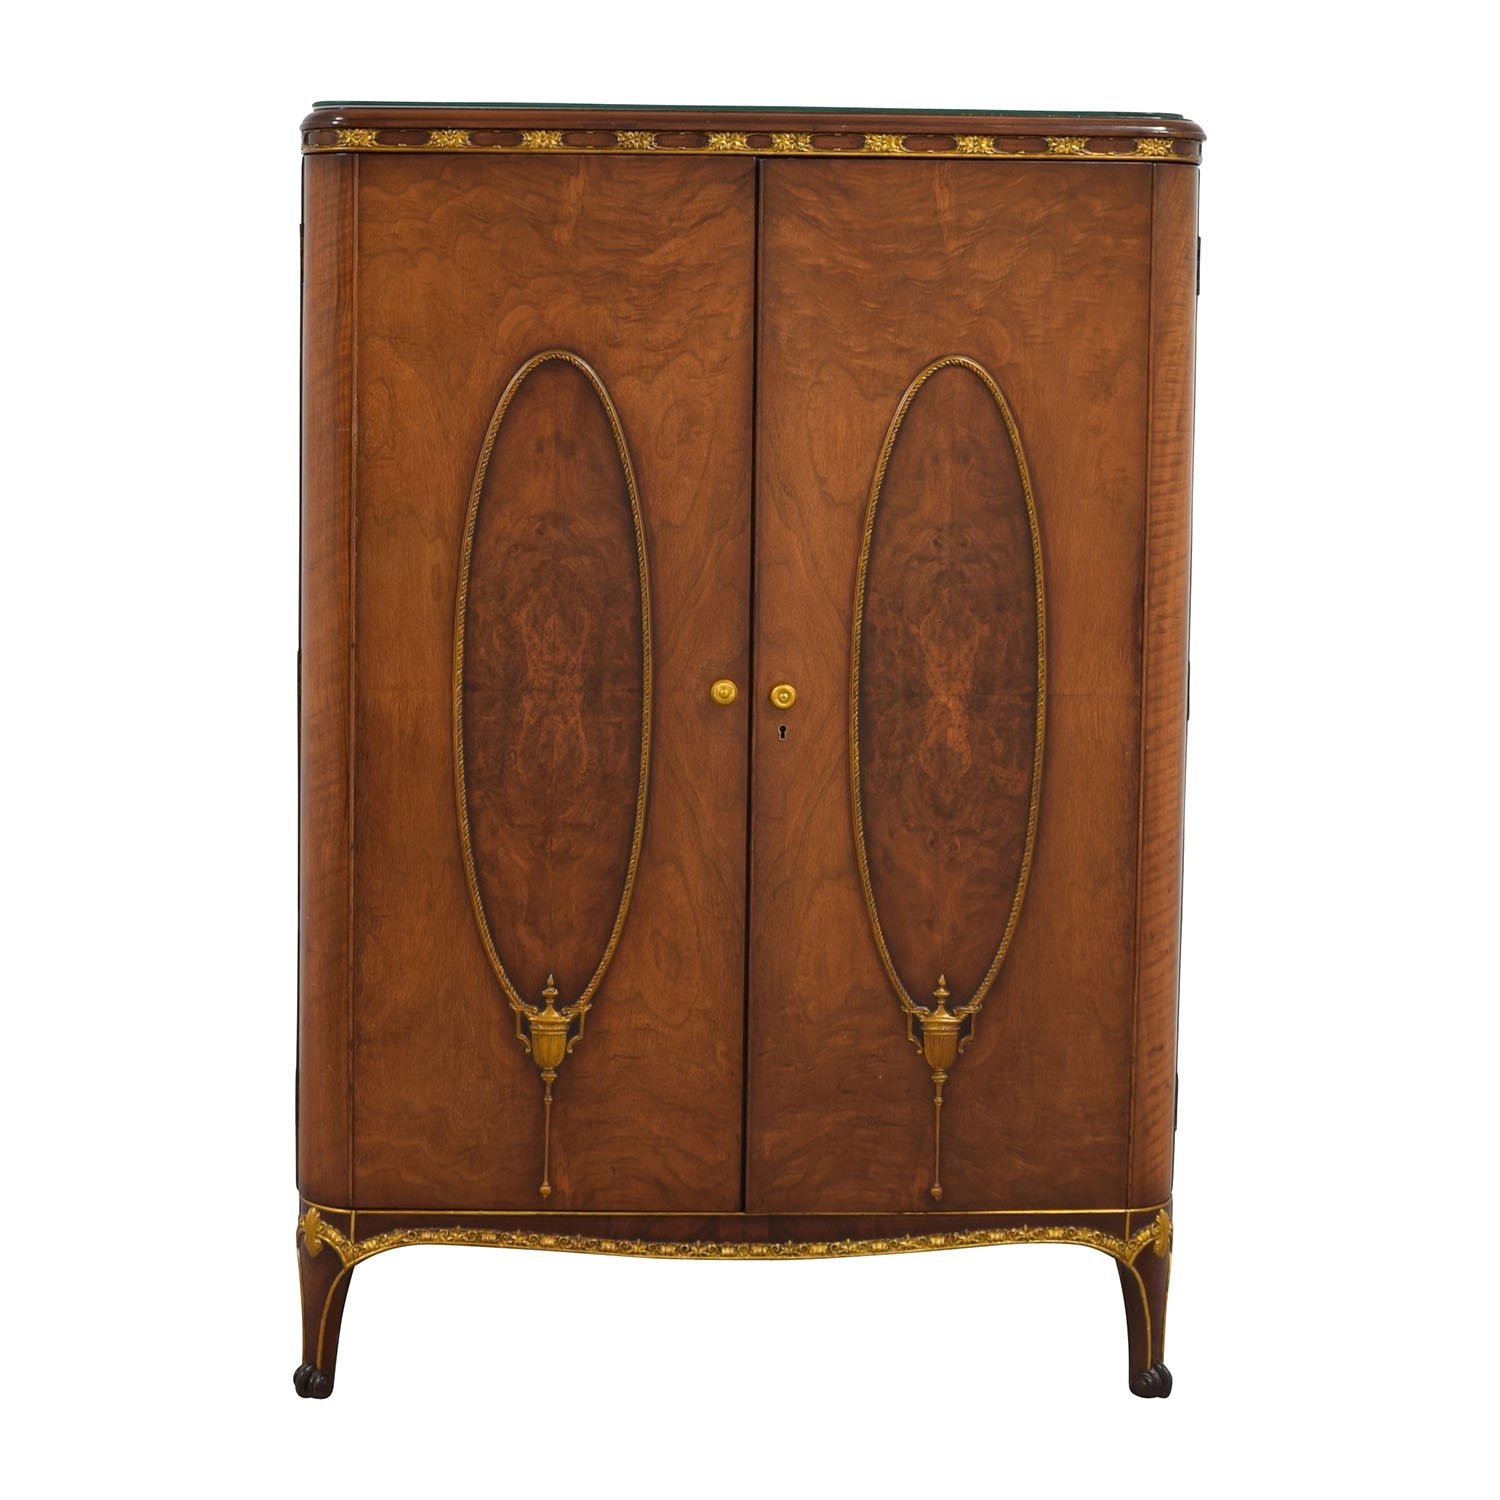 Antique Wardrobe with Gold Trim sale ... - 71% OFF - Antique Wardrobe With Gold Trim / Storage